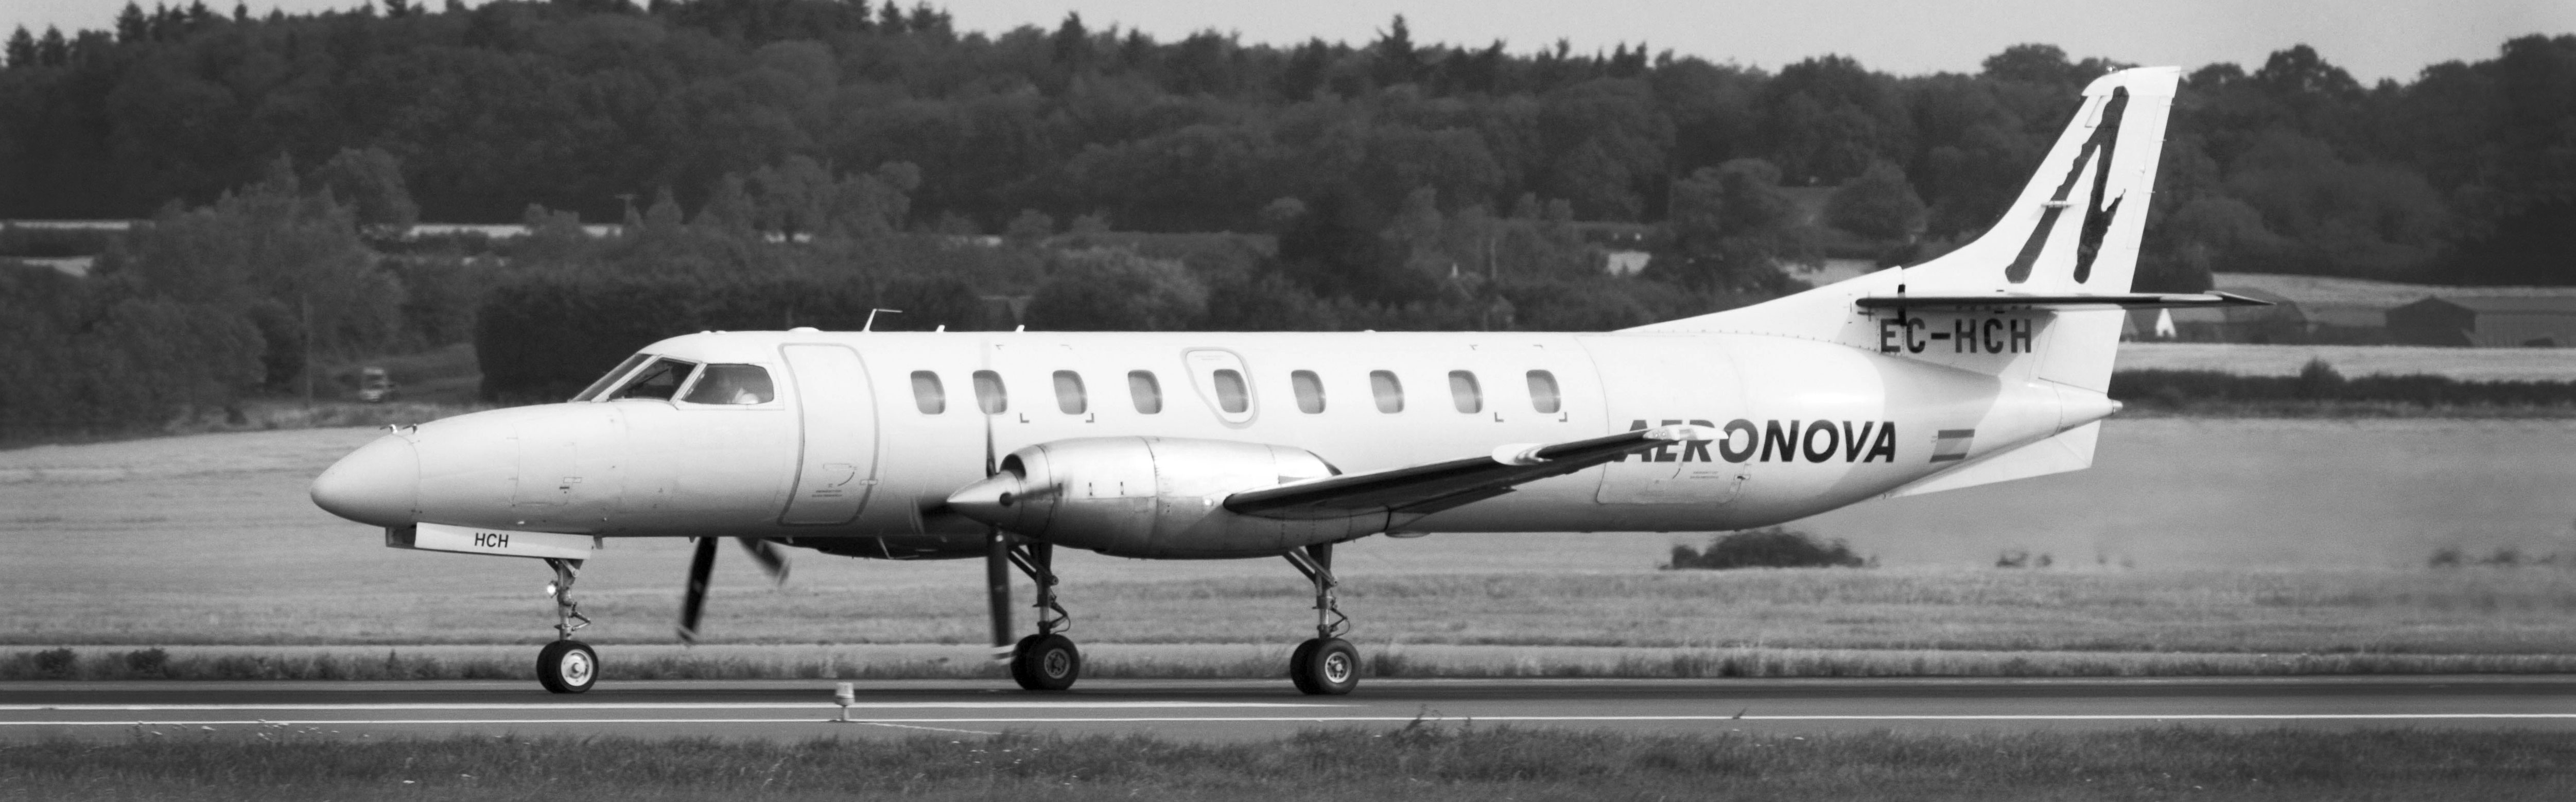 Turboprop Engine Rental and Leasing - Aircraft Propulsion